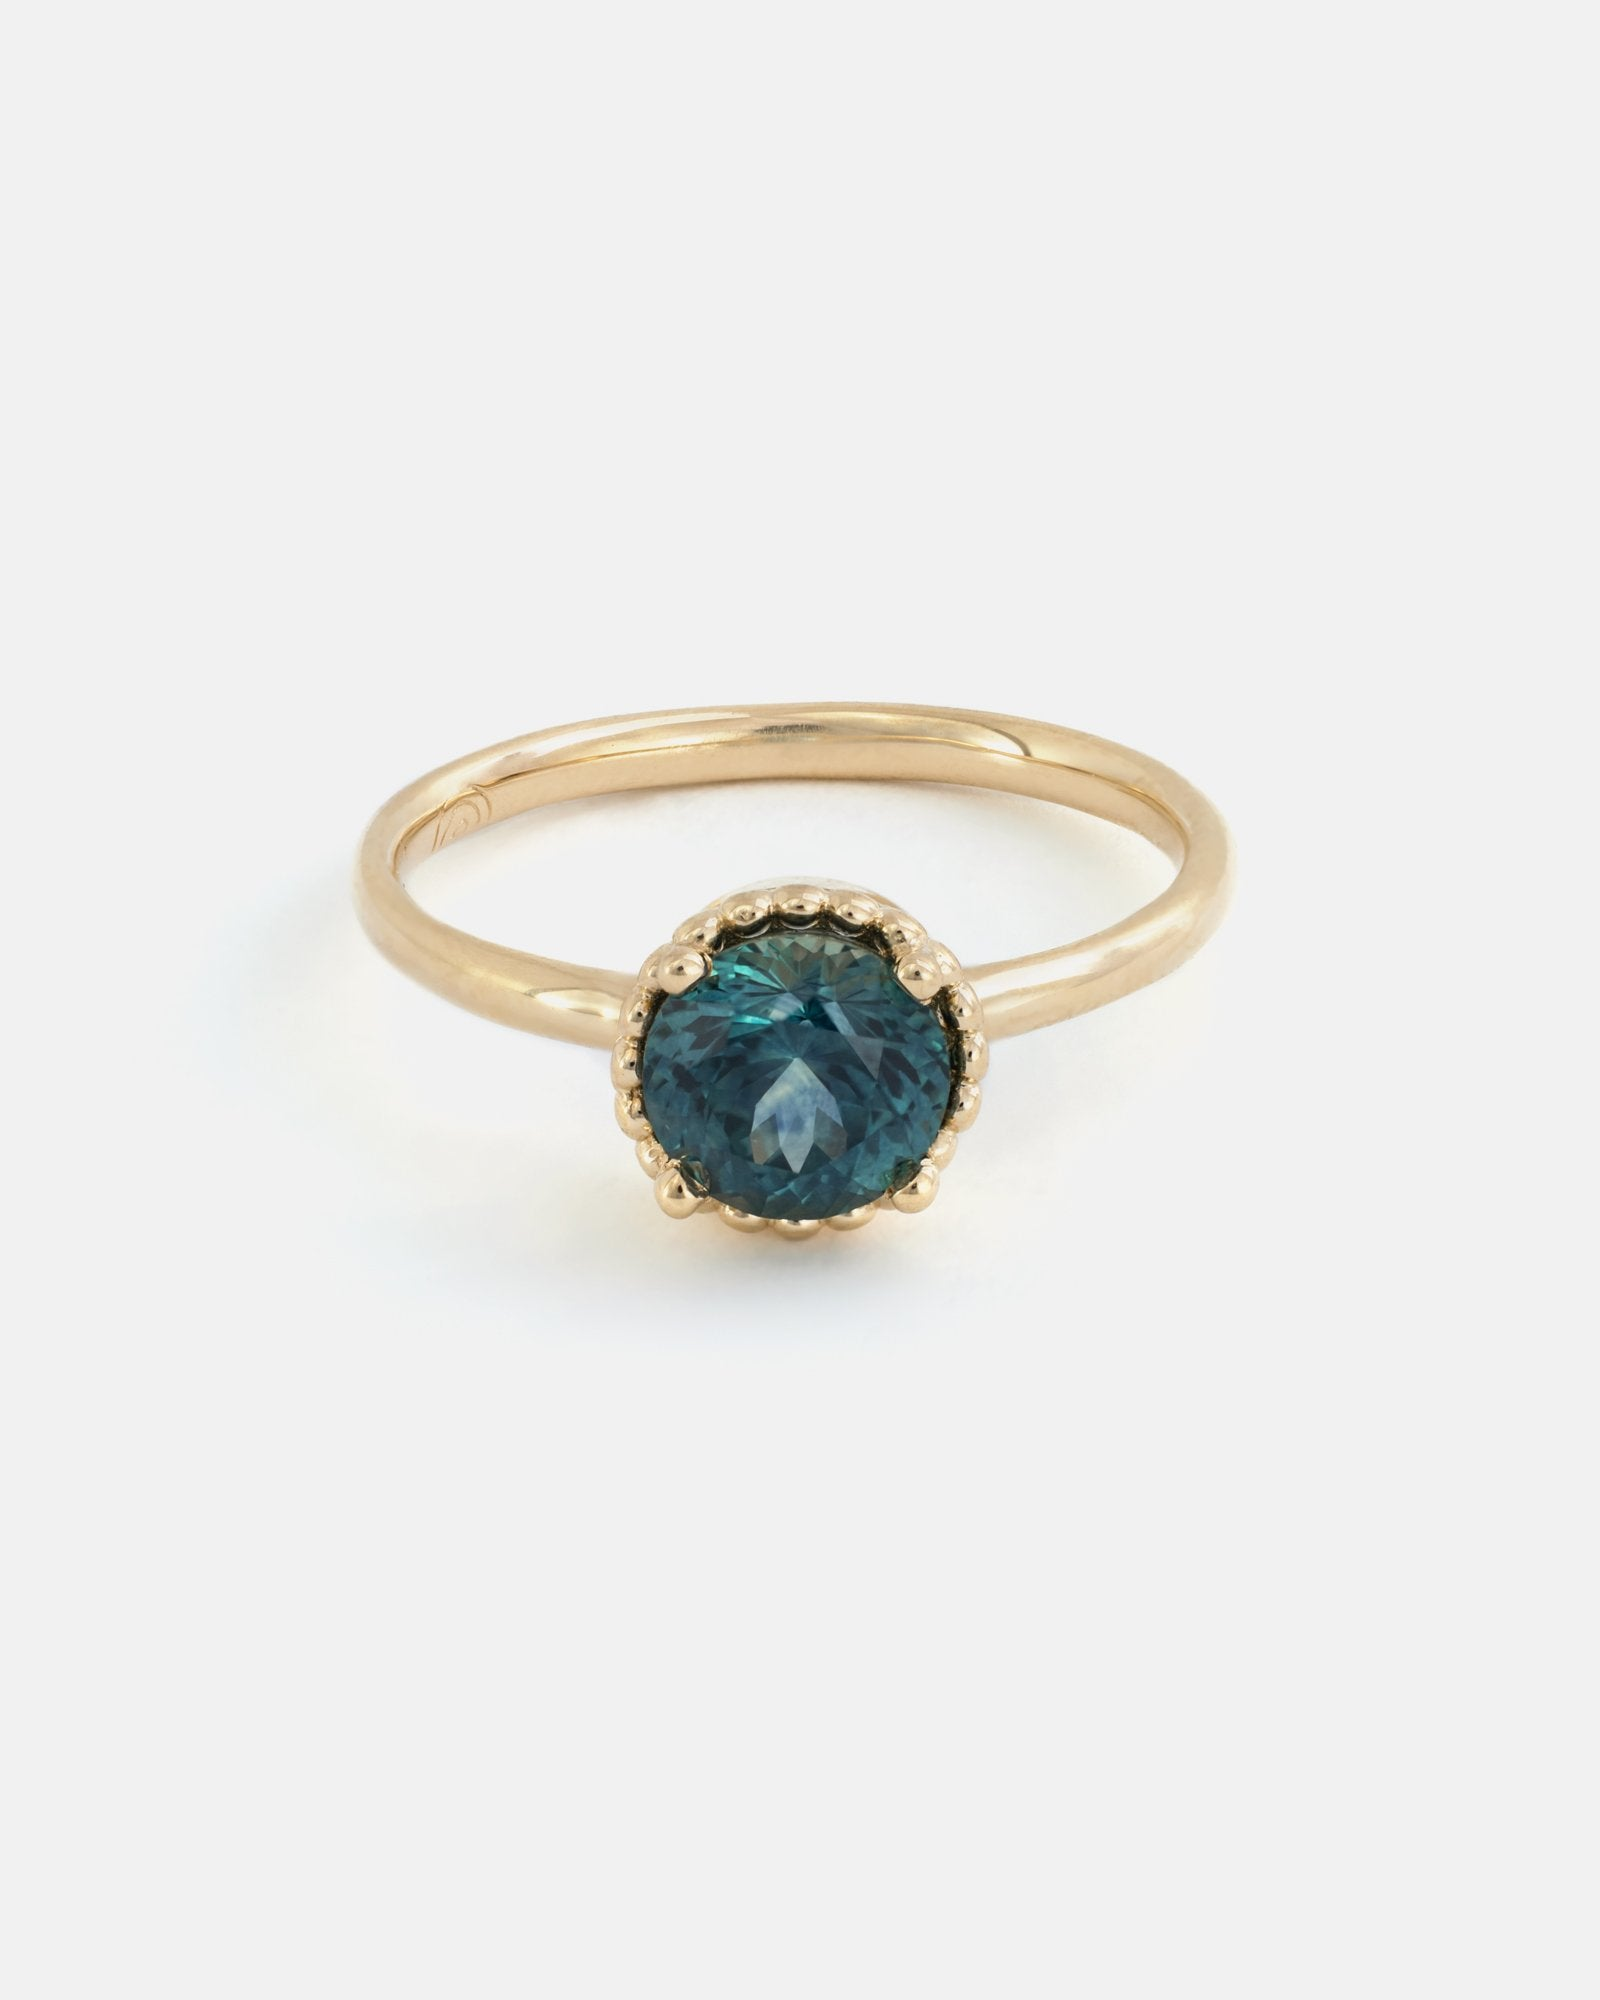 Round Galatée Ring in Fairmined Gold with Montana Sapphire